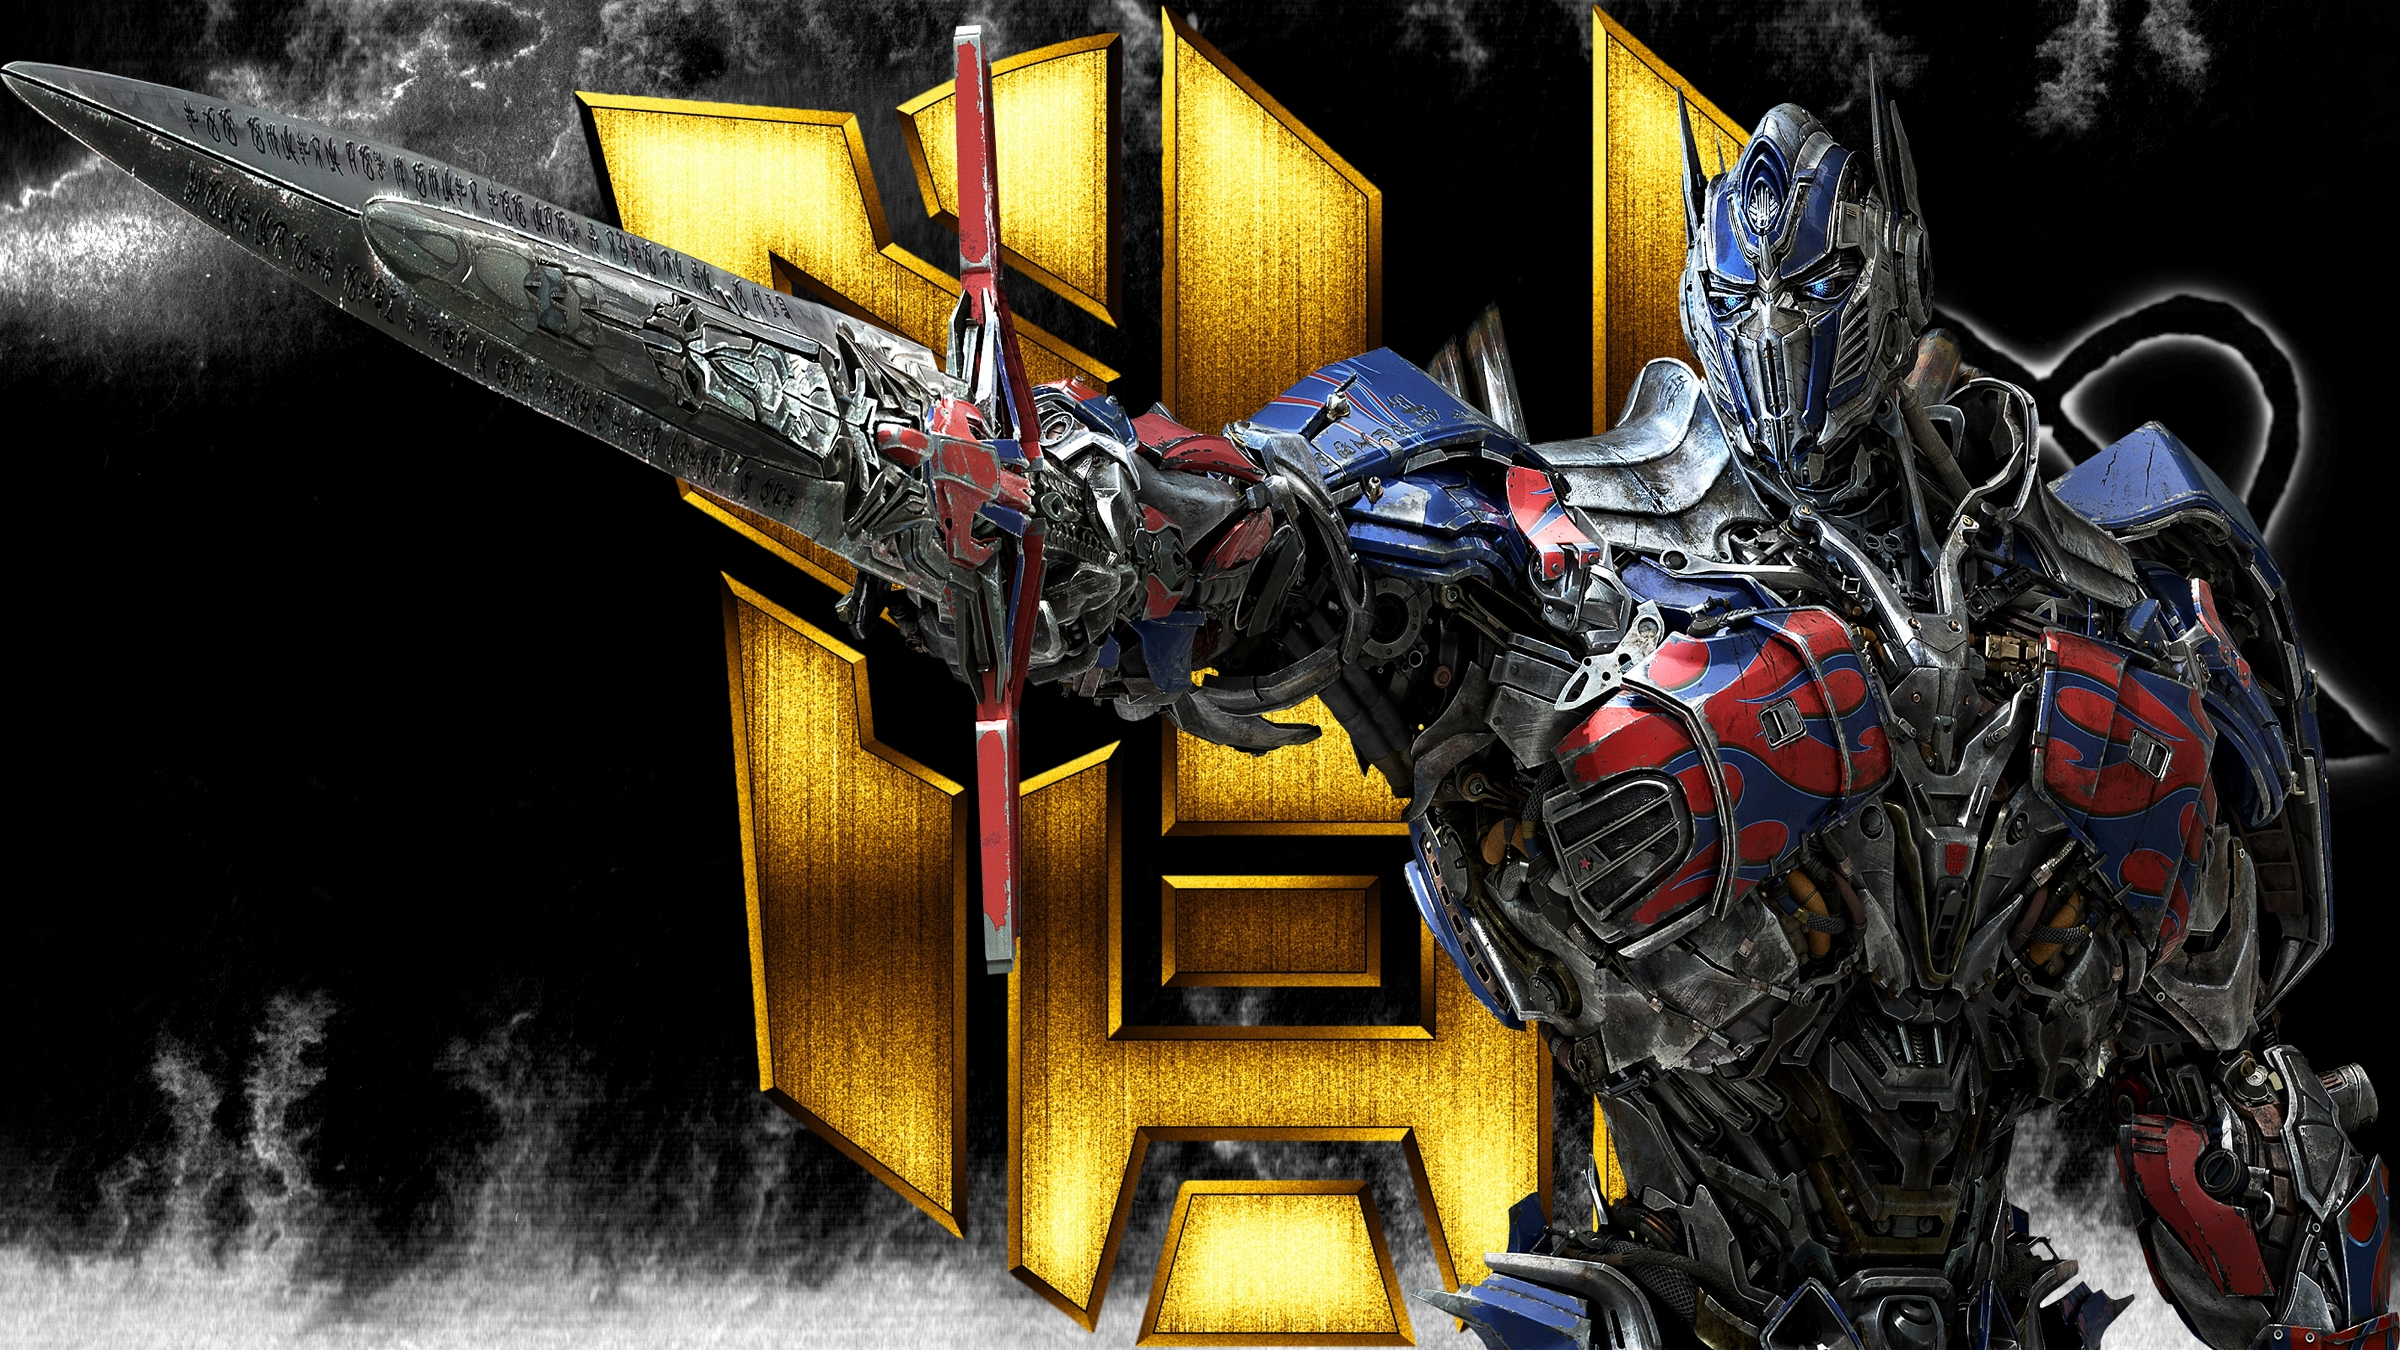 Optimus Prime And Bumblebee Wallpaper